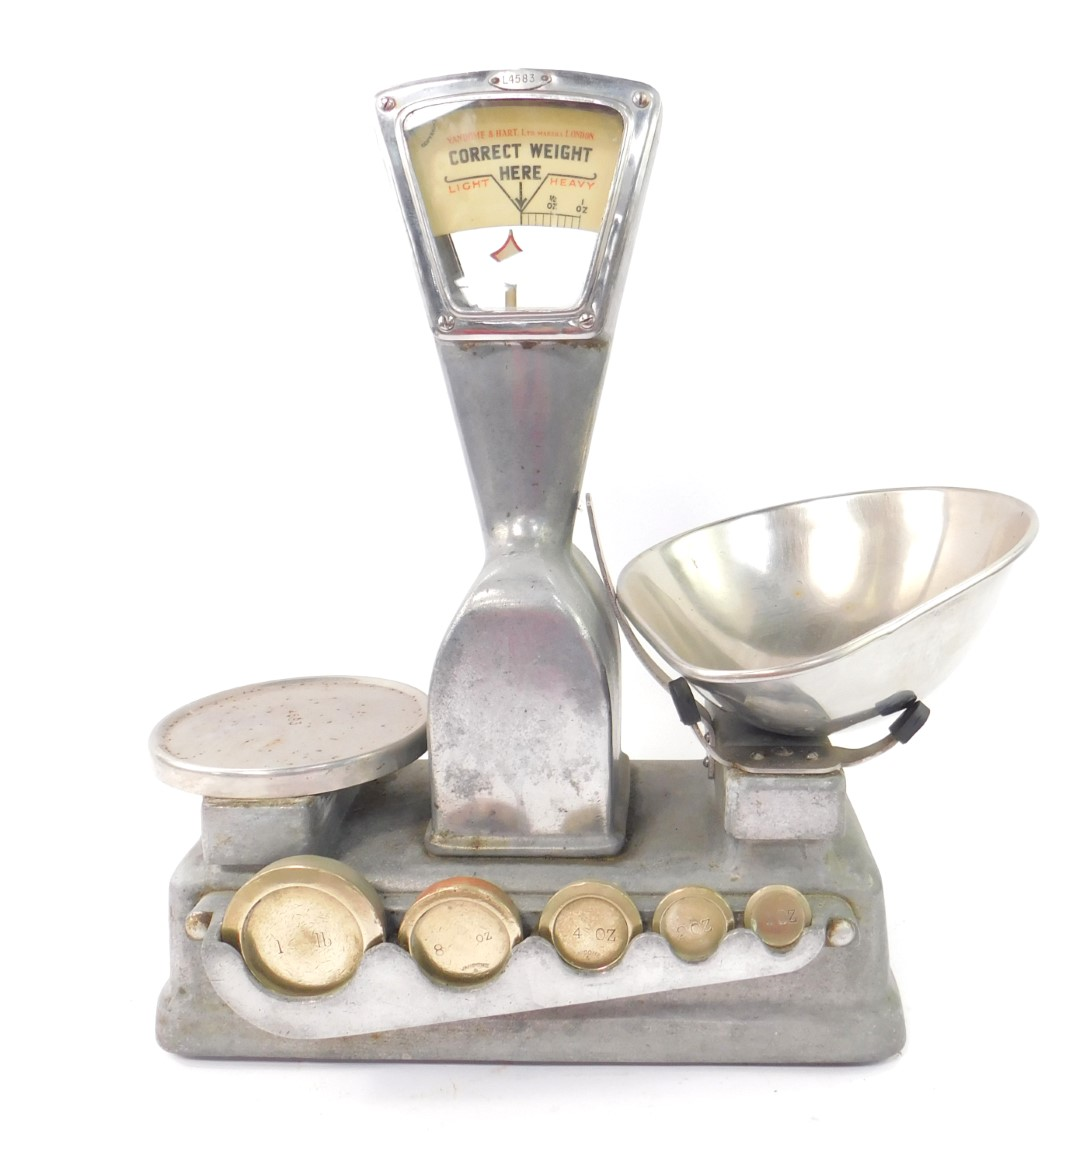 Lot 55 - A set of early 20thC Vandome & Hart grocery scales, no.4583, the base with recesses for graduated